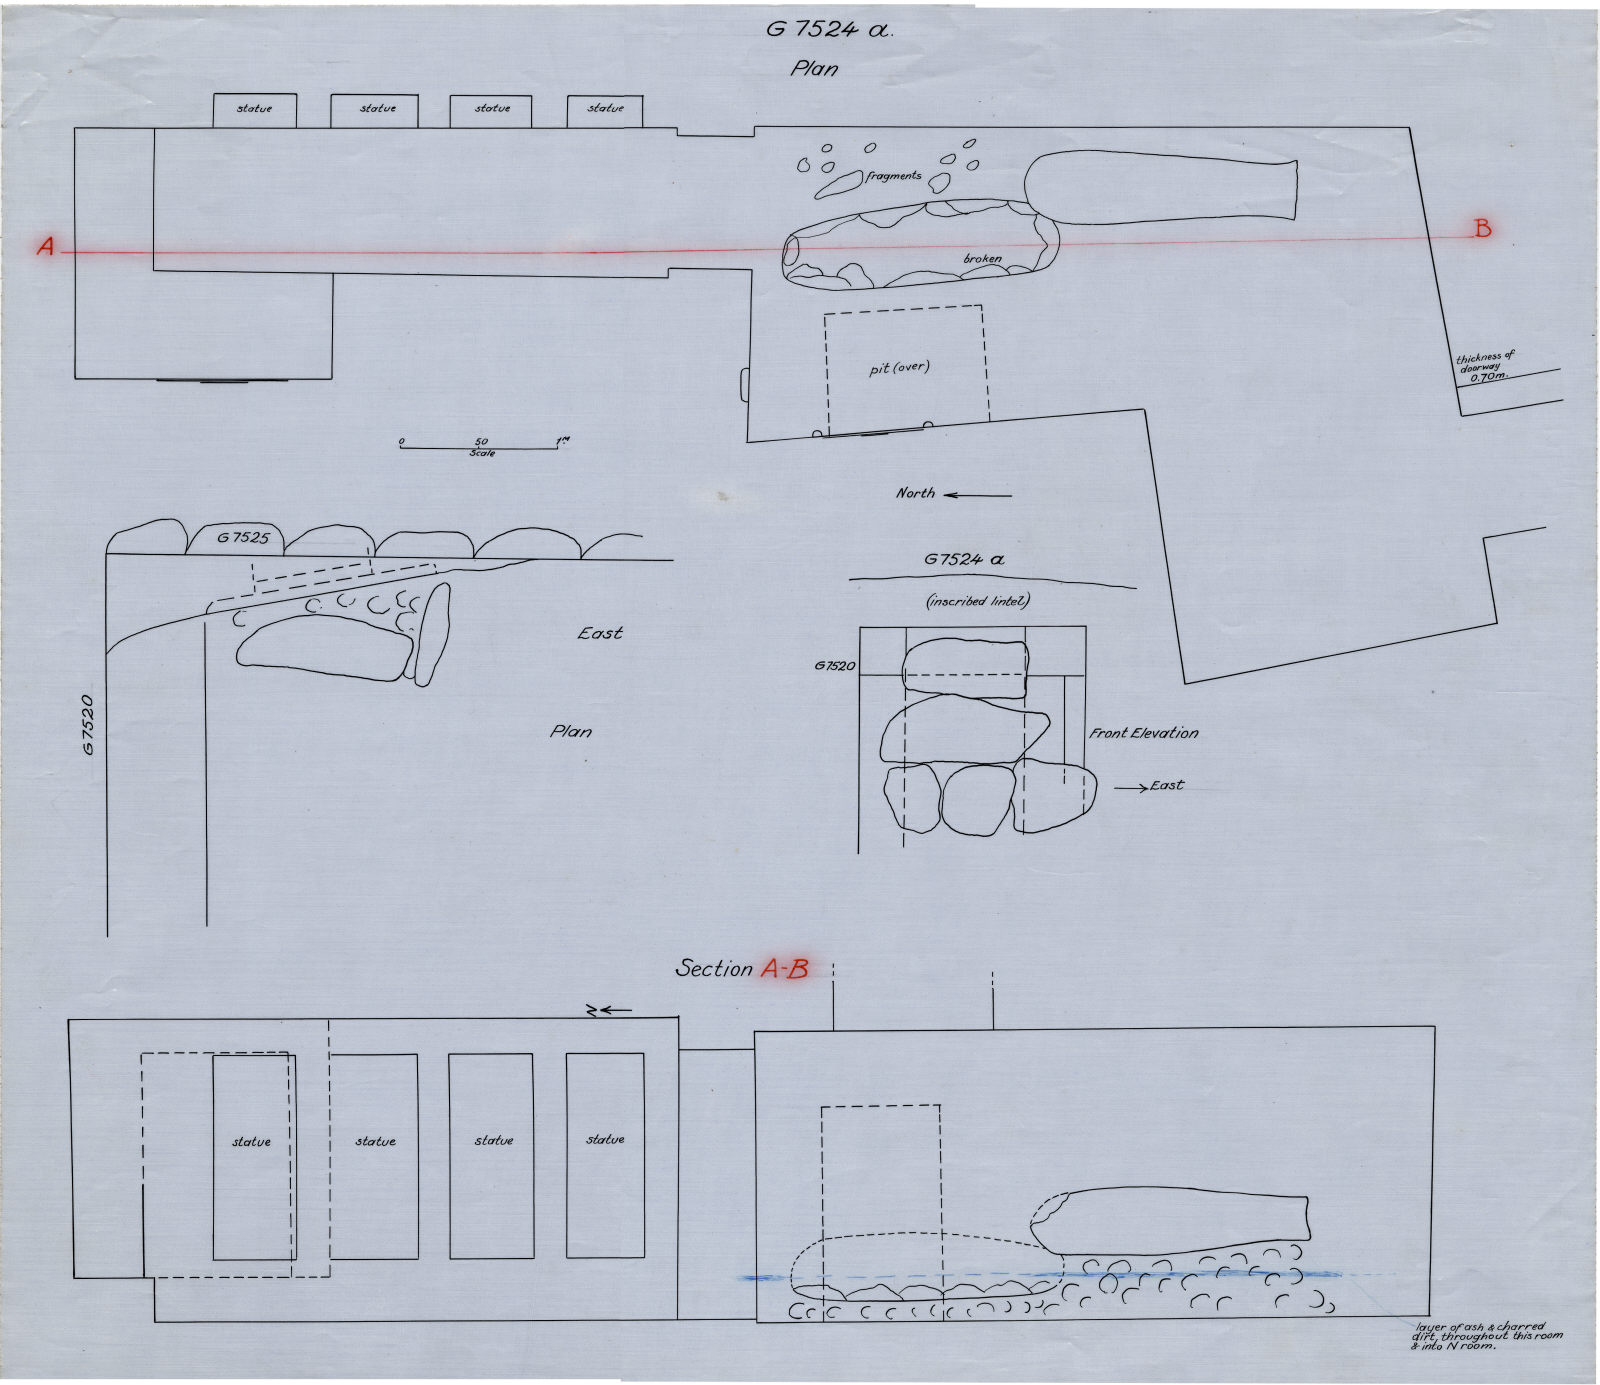 Maps and plans: G 7524, Plan and section of chapel